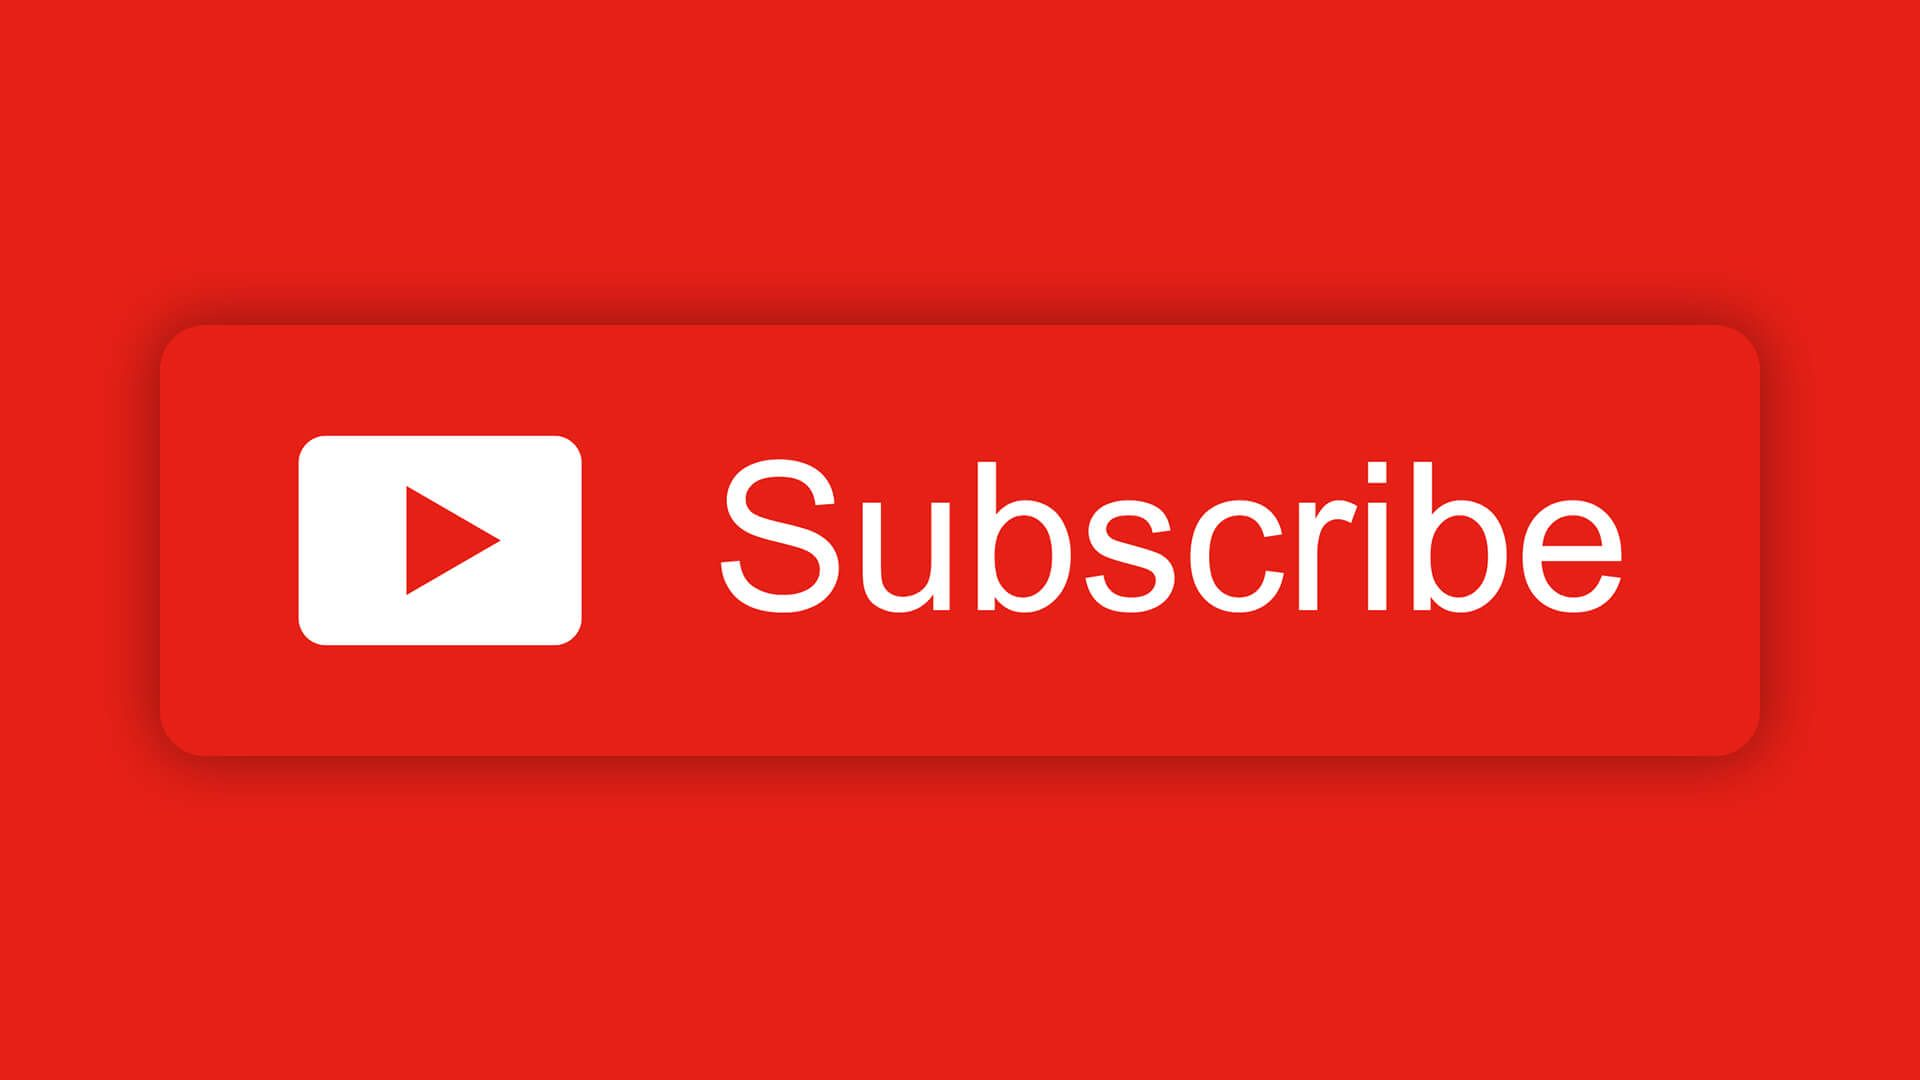 Free Youtube Subscribe Button Download Design Inspiration Desain